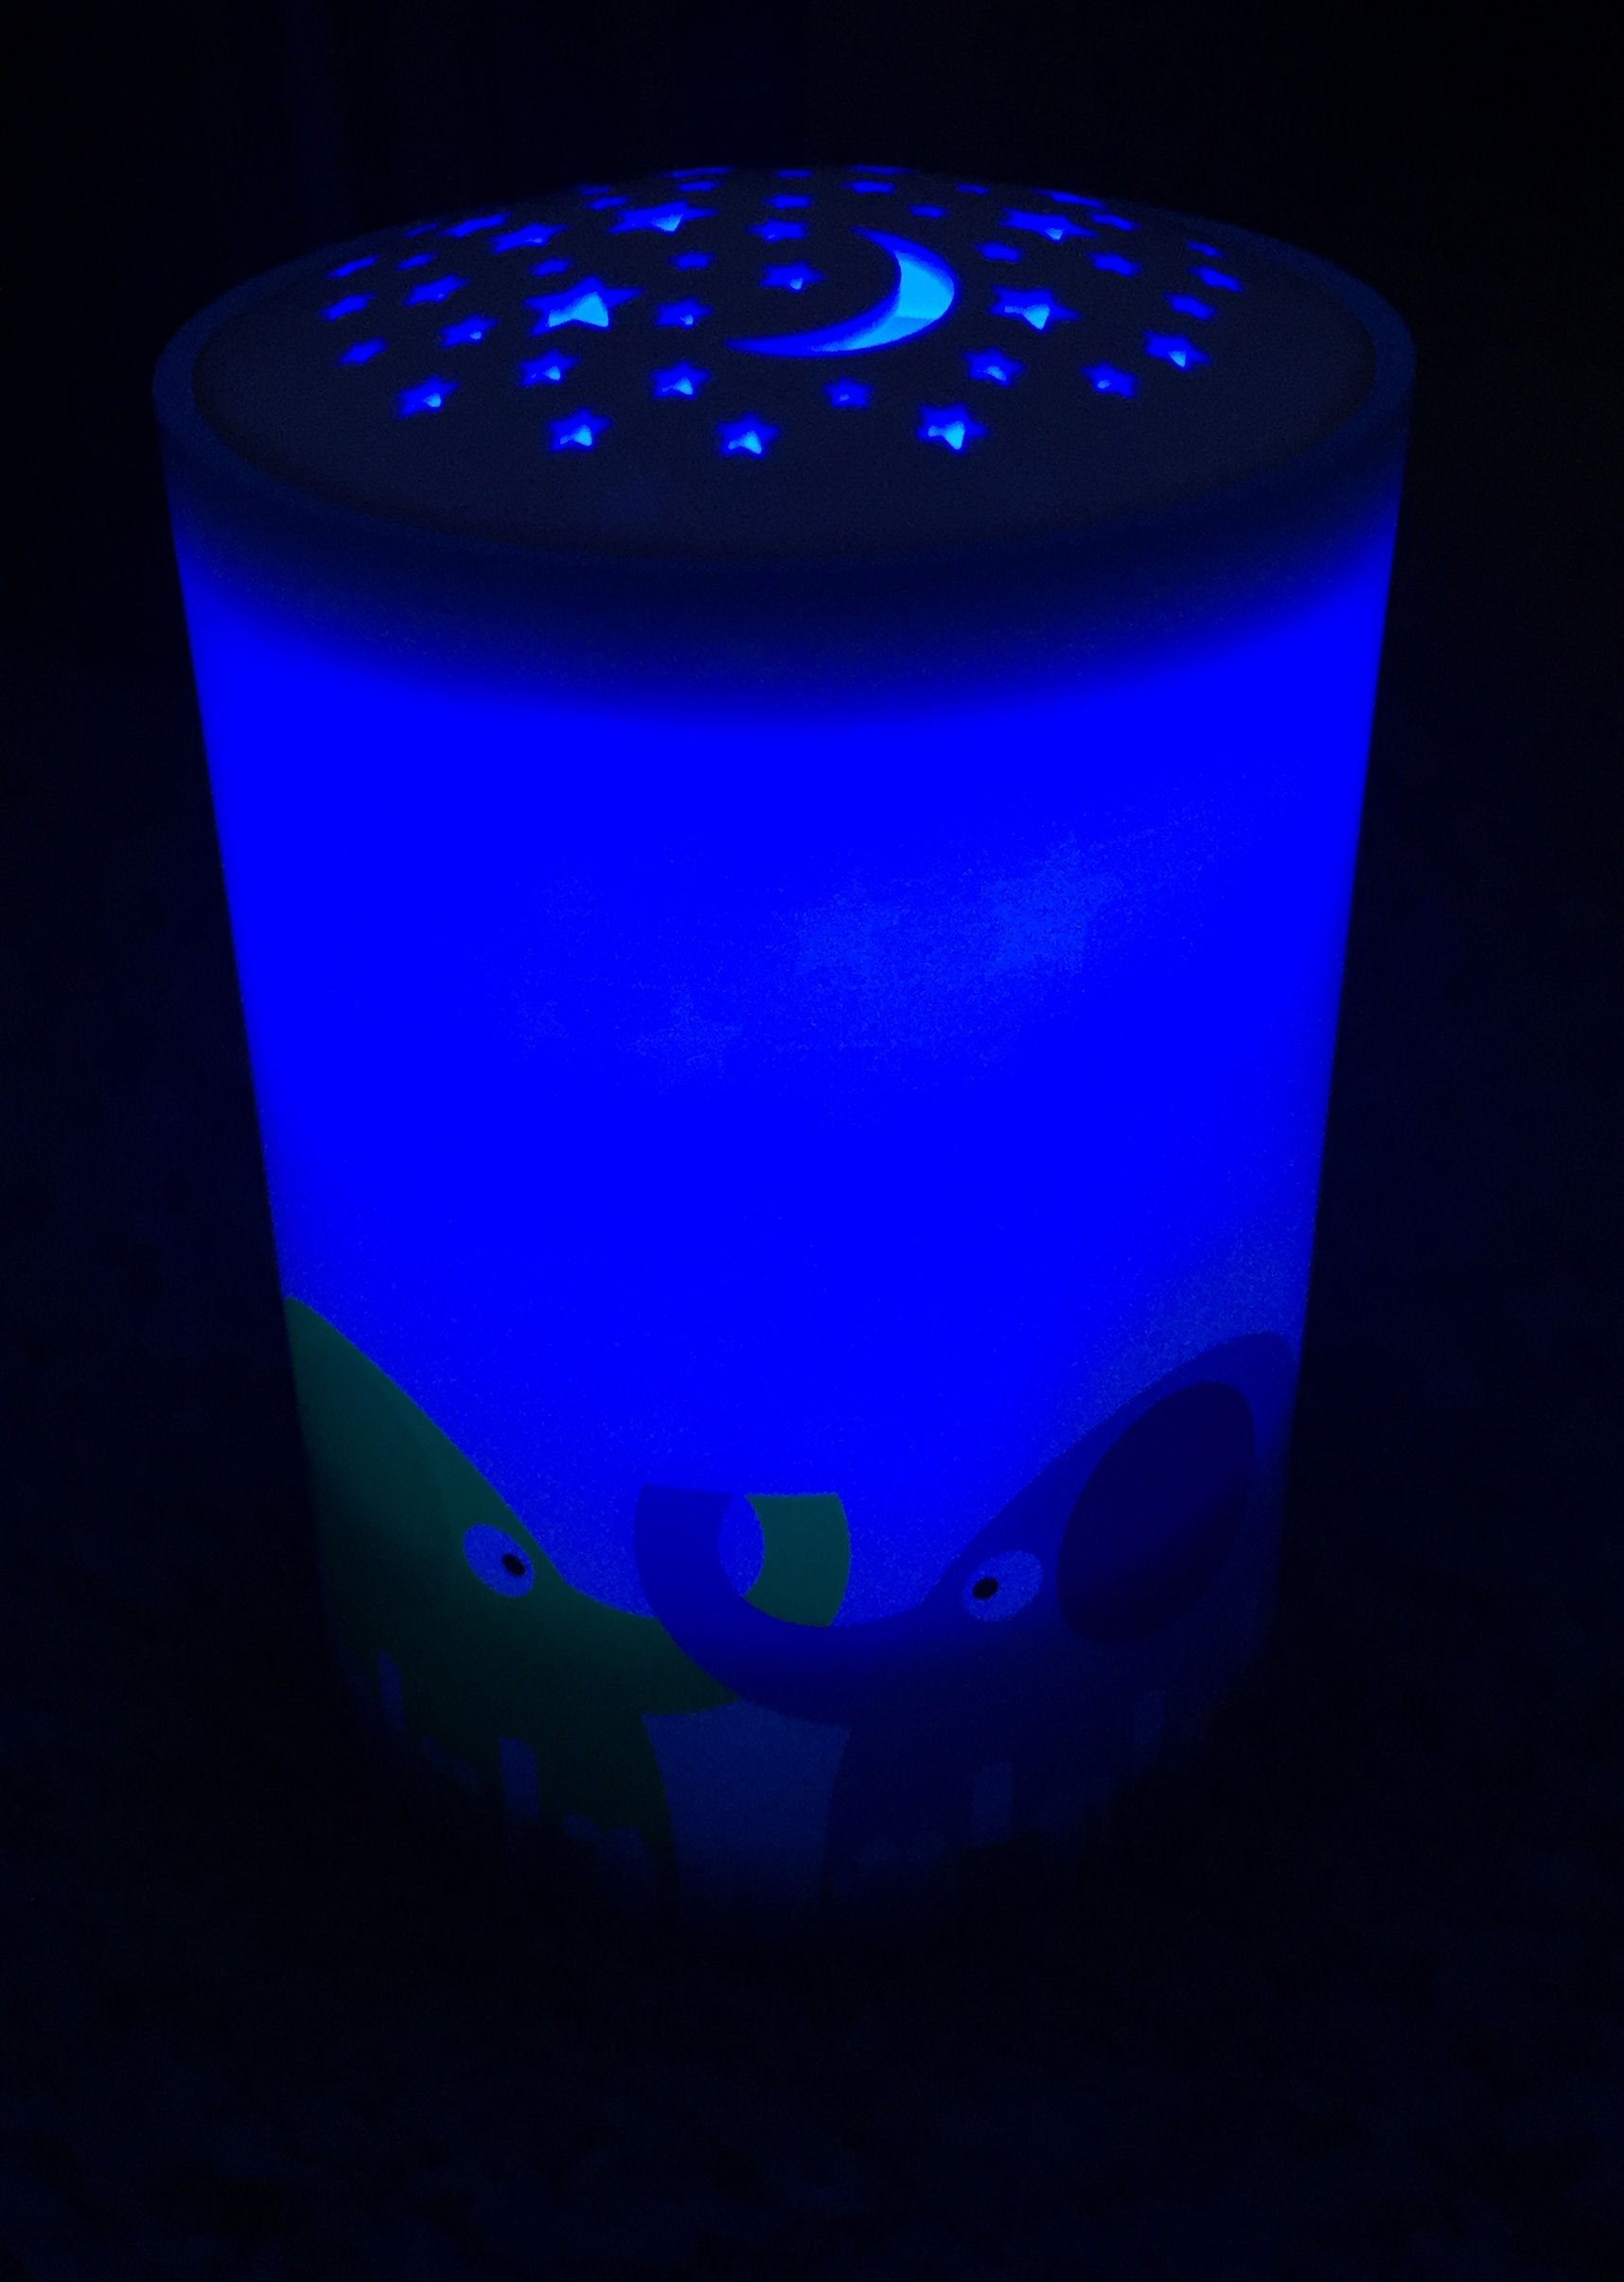 Energizer LED Elephant Projection Night Light- Blue Glow Light Place Anywhere in Room for Safety, Soothing, Calming Nights Good for Kids 30 Minute Timer